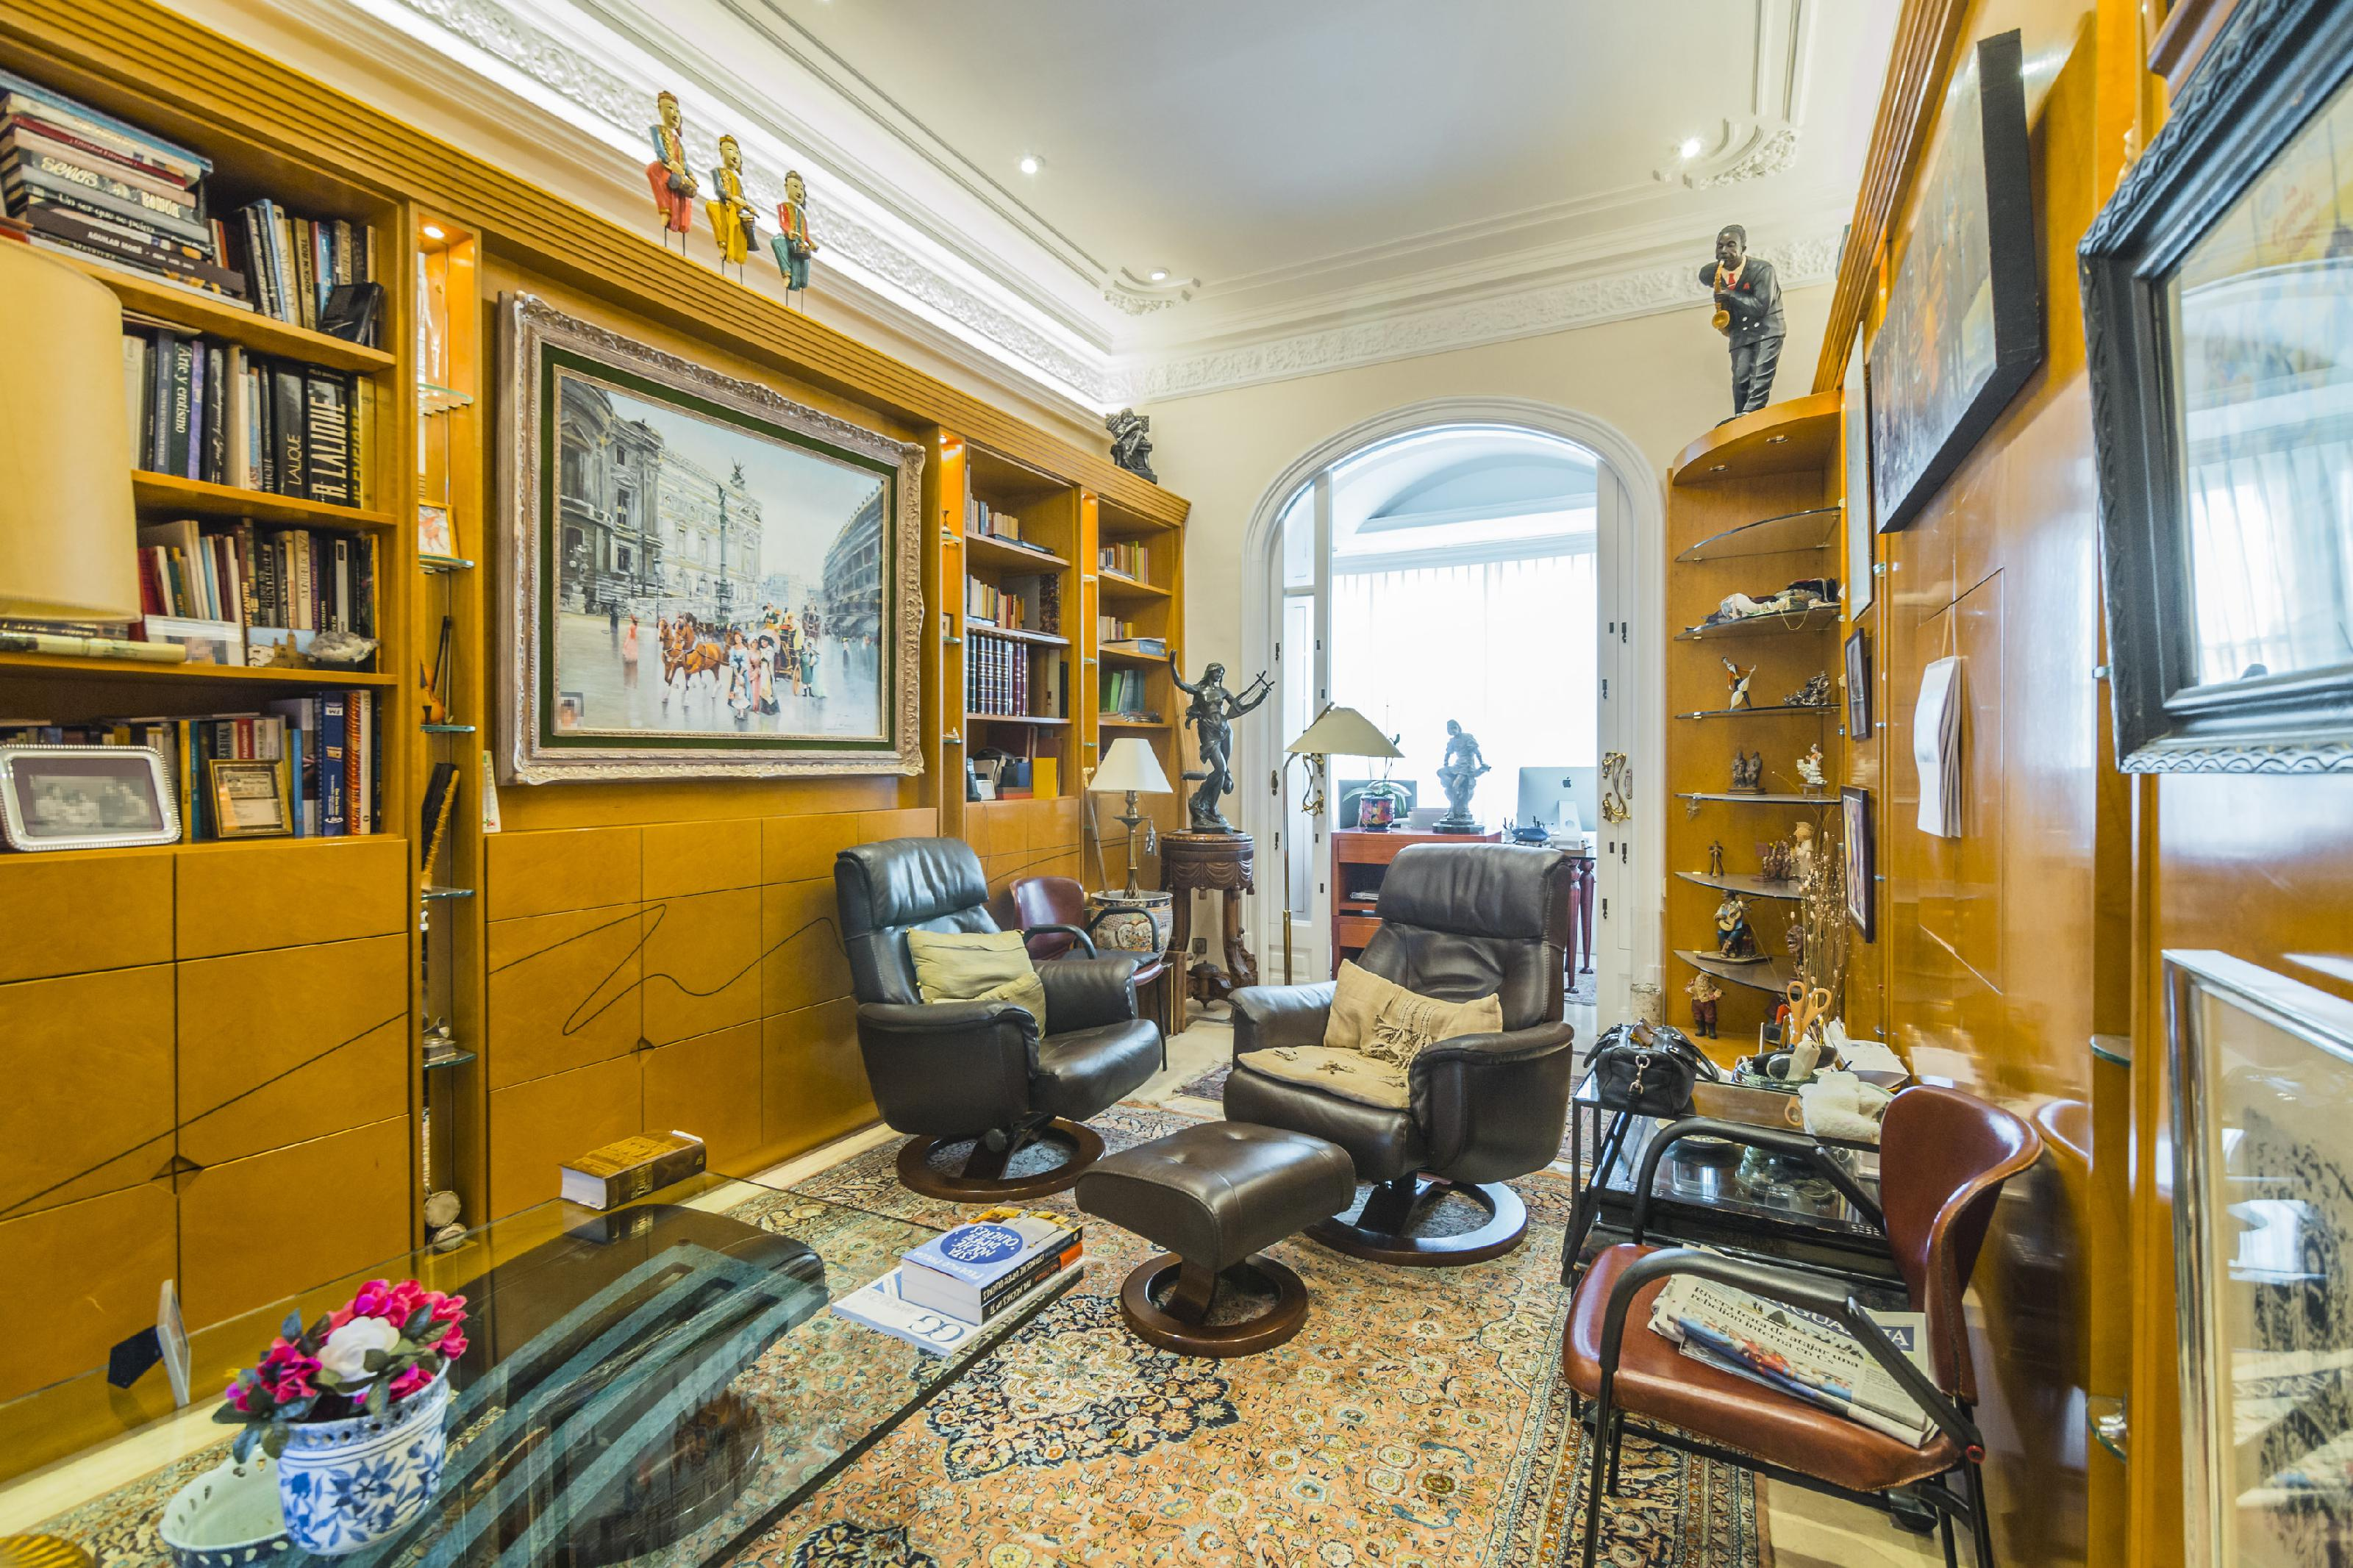 87800 Apartment for sale in Eixample, Dreta Eixample 22